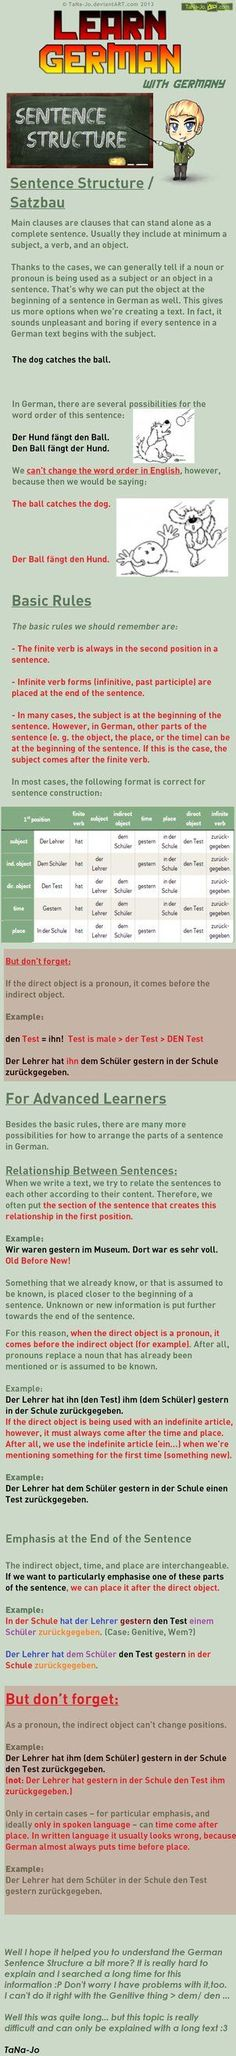 Learn German #18 Some time left to do LEARN GERMAN parts Sentence Structure...a heavy part -_- nnnh sorry for this long update >_< Thanks to VampireQueenEffeffiaWho suggested this theme...